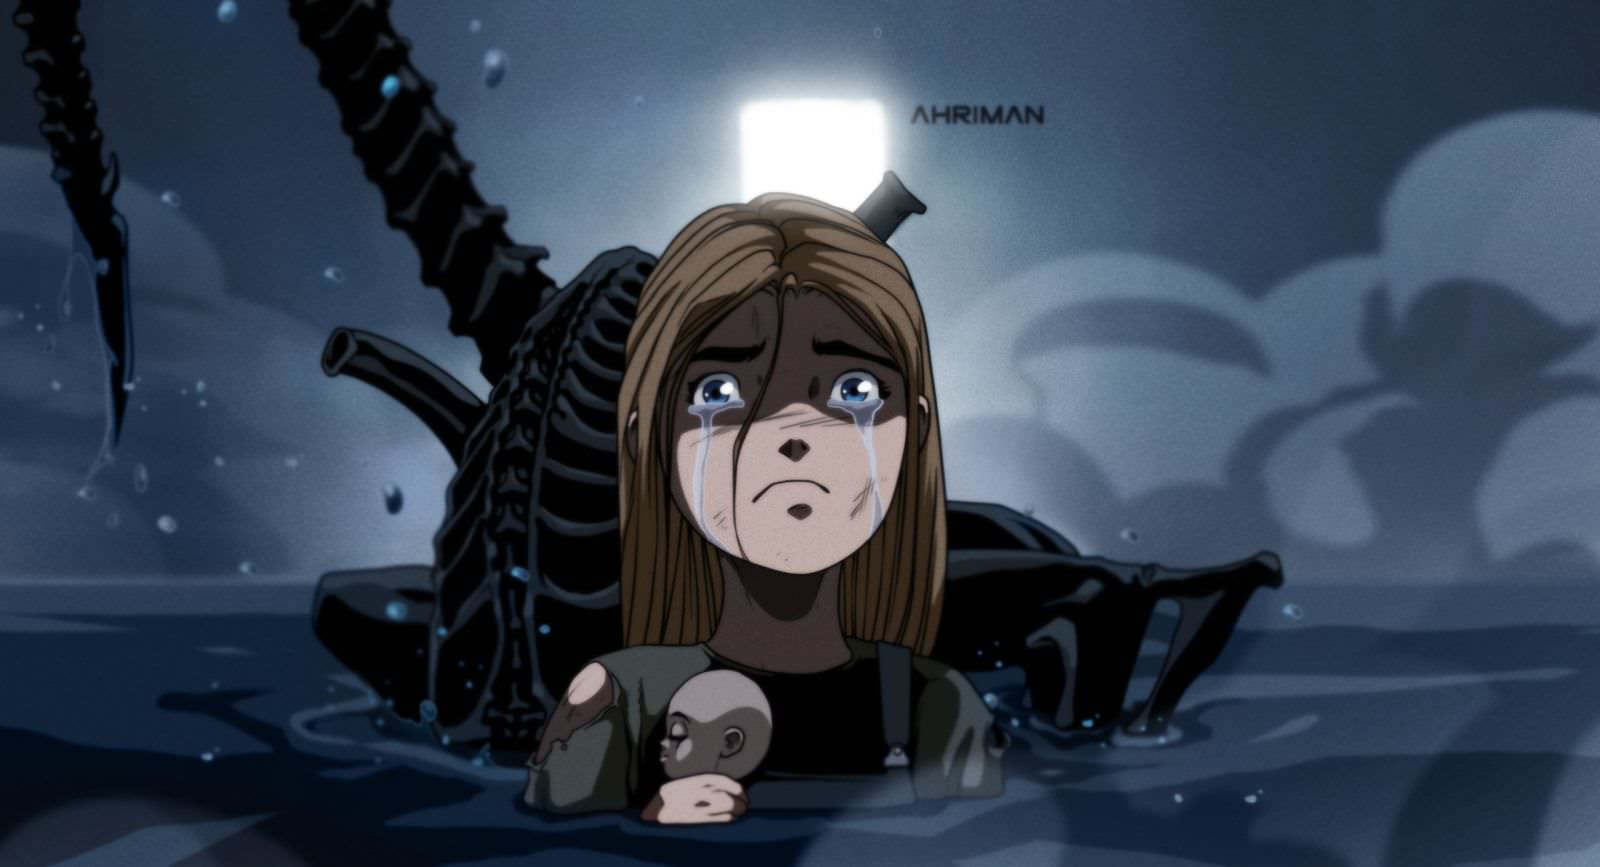 Ahriman ALIENS 2 - Must-See Art: Ahriman Turns Classic Flicks Into Anime!